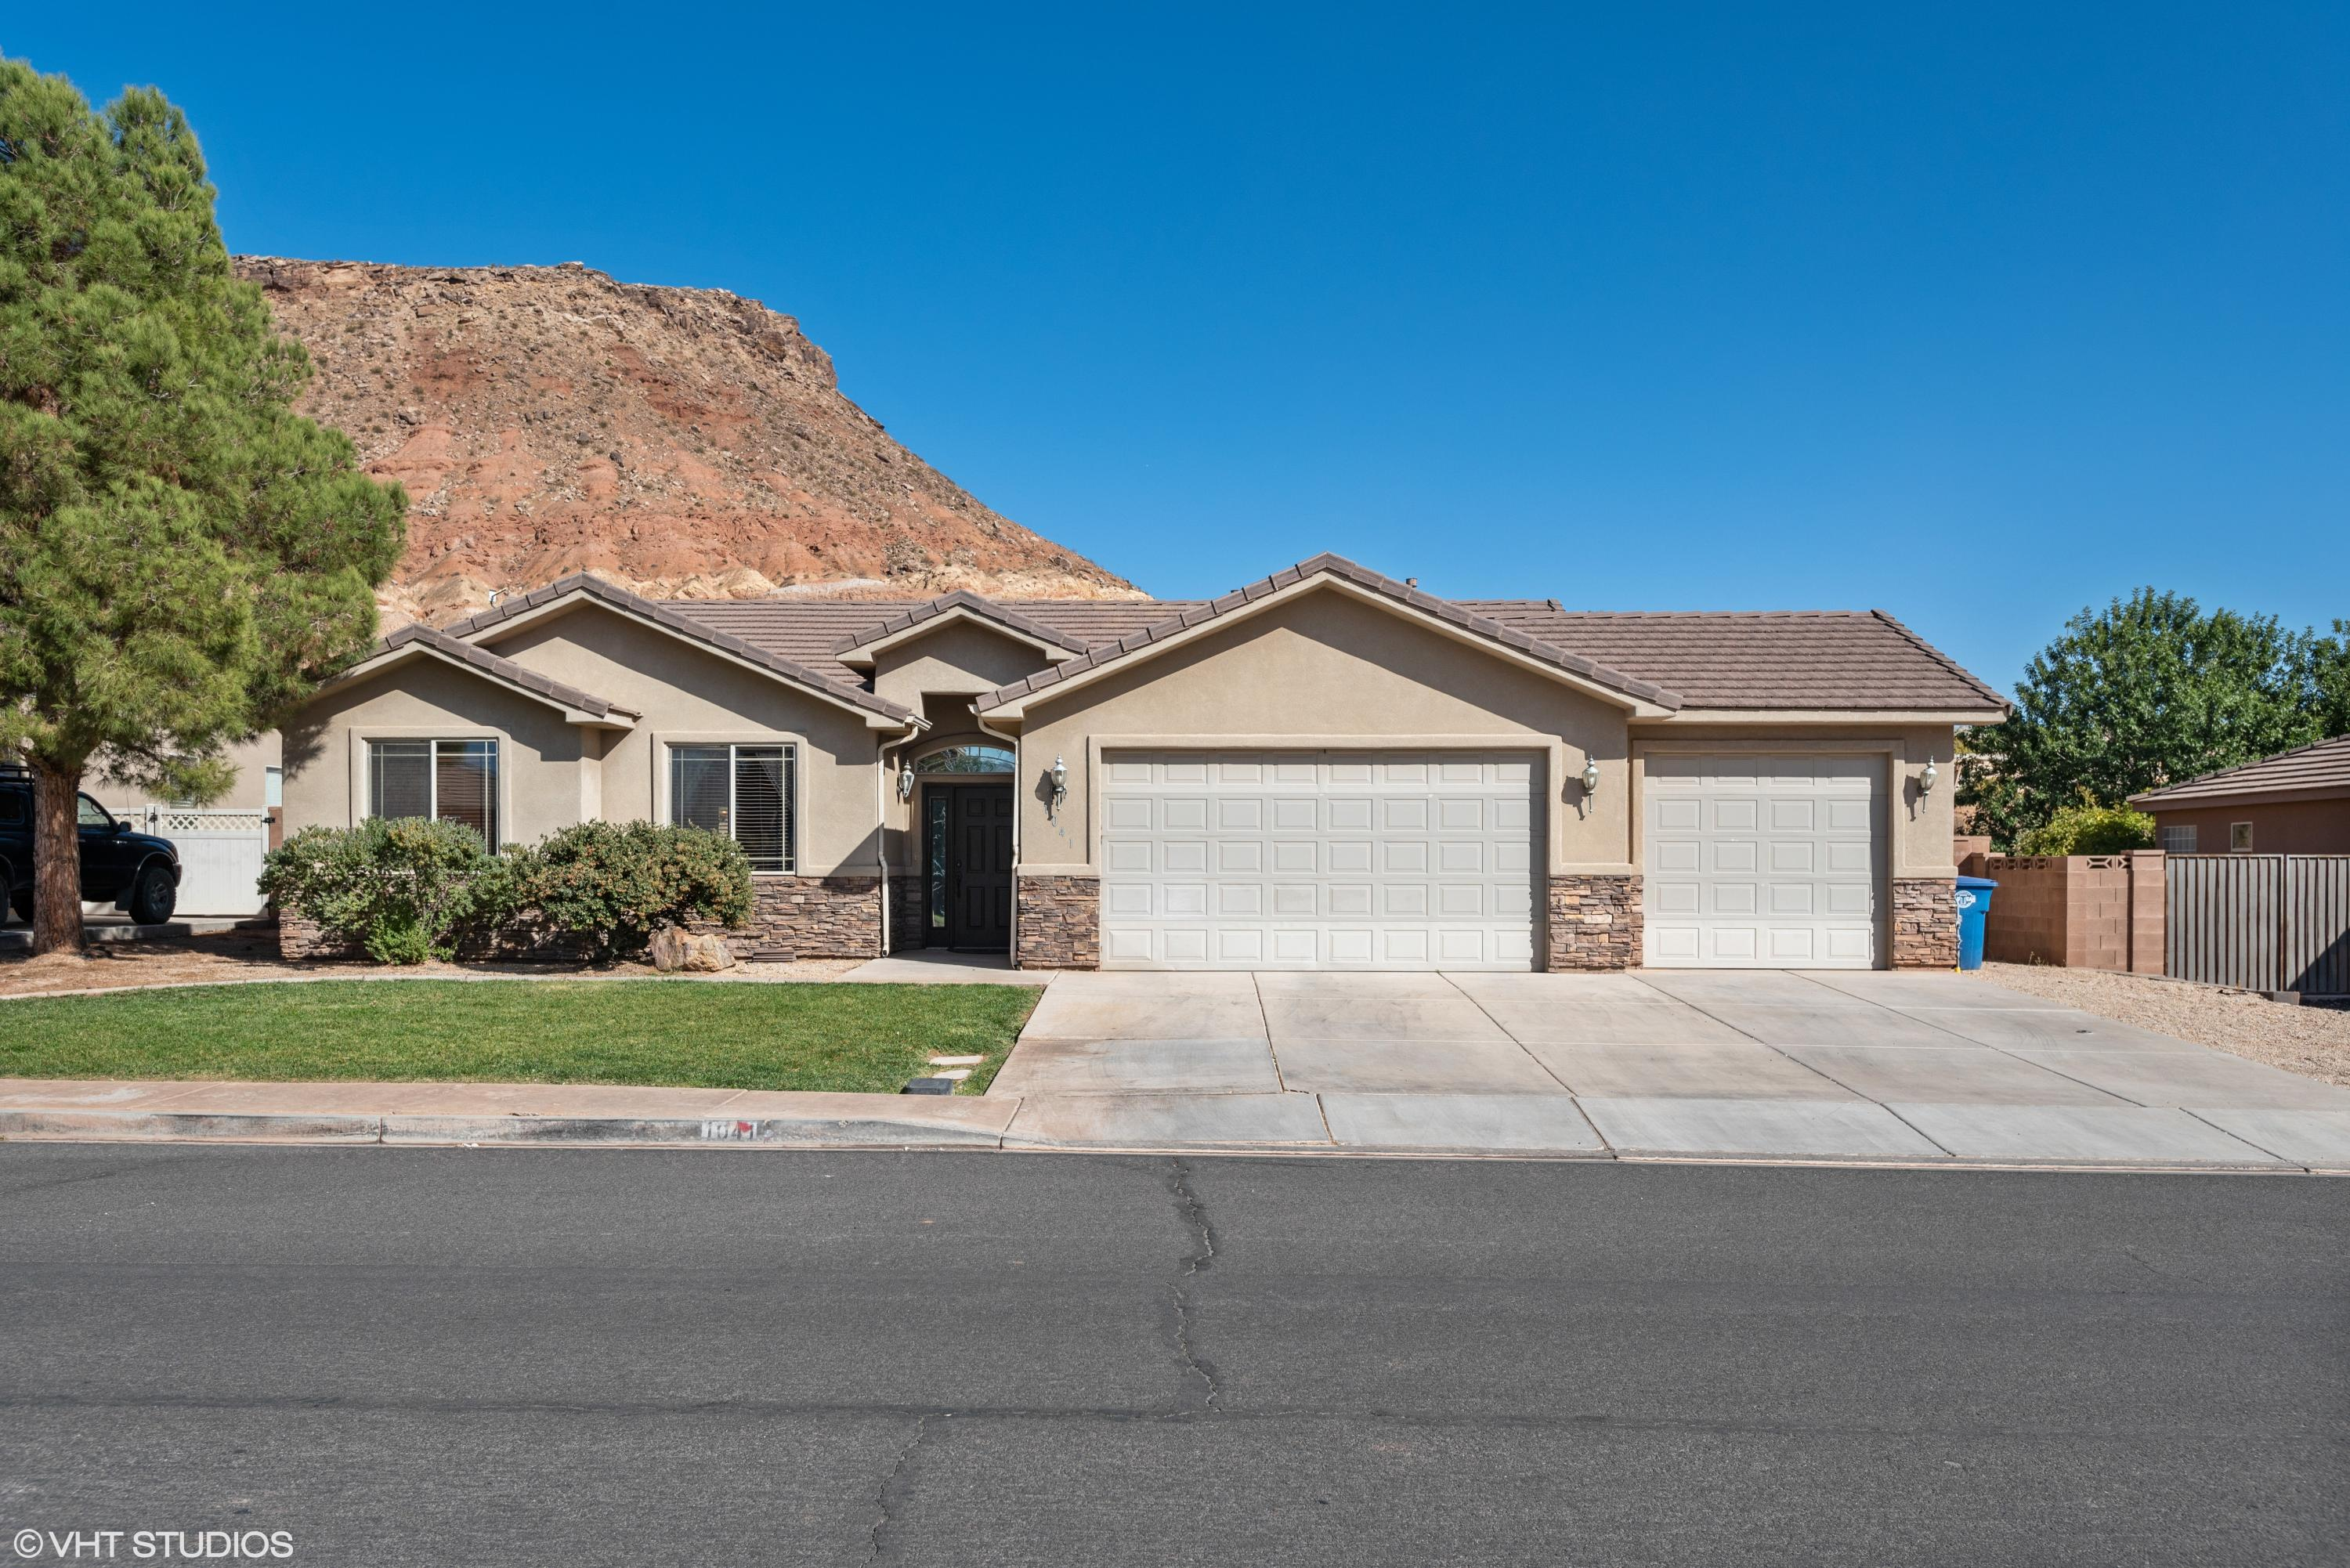 1041 S White Sands Dr, Washington Ut 84780